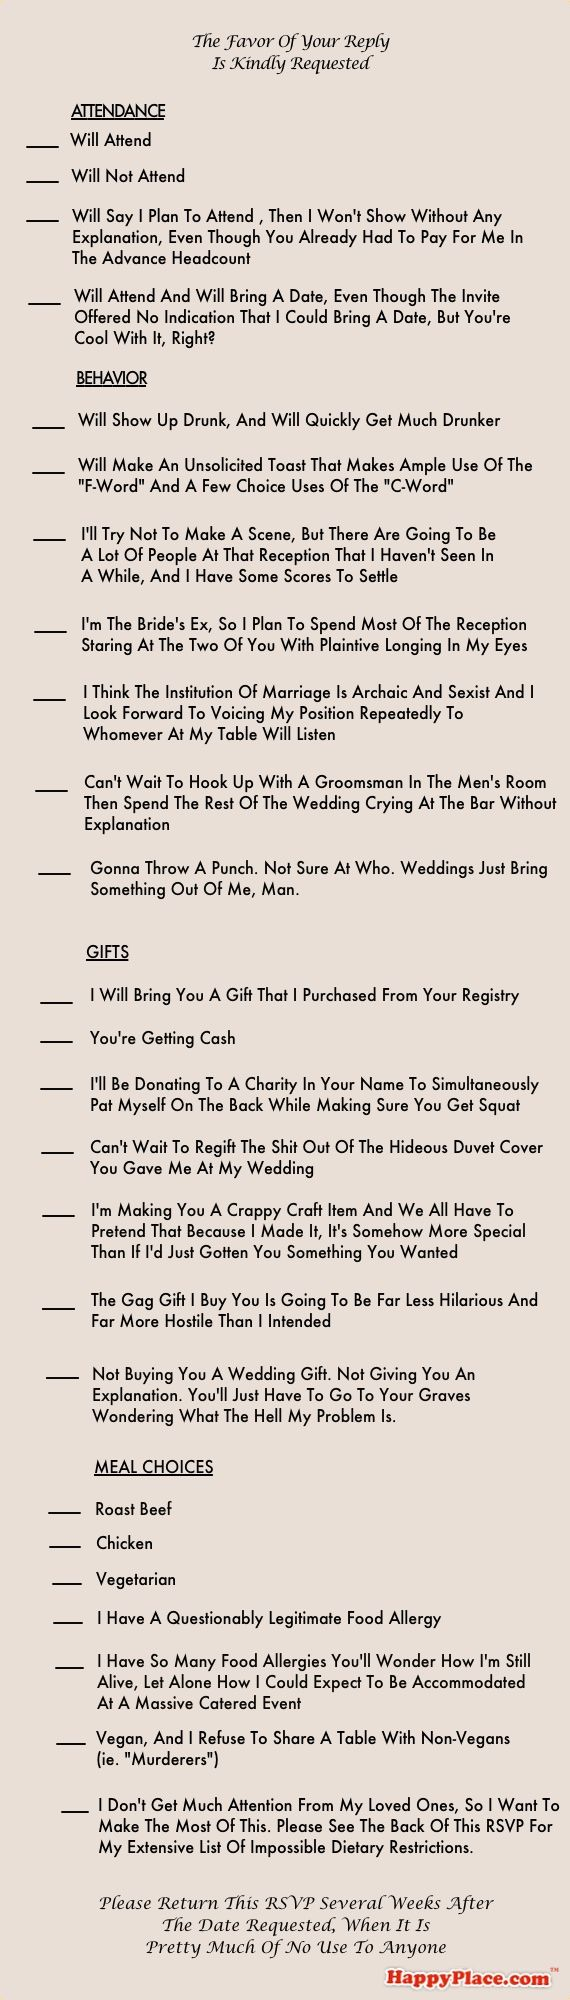 The Most Comprehensively Honest Wedding RSVP In The History Of Marriage | Happy Place: Comprehensively Honest, Wedding Ideas, Weddings, Wedding Invitations, Card, Funnies, Honest Wedding, So Funny